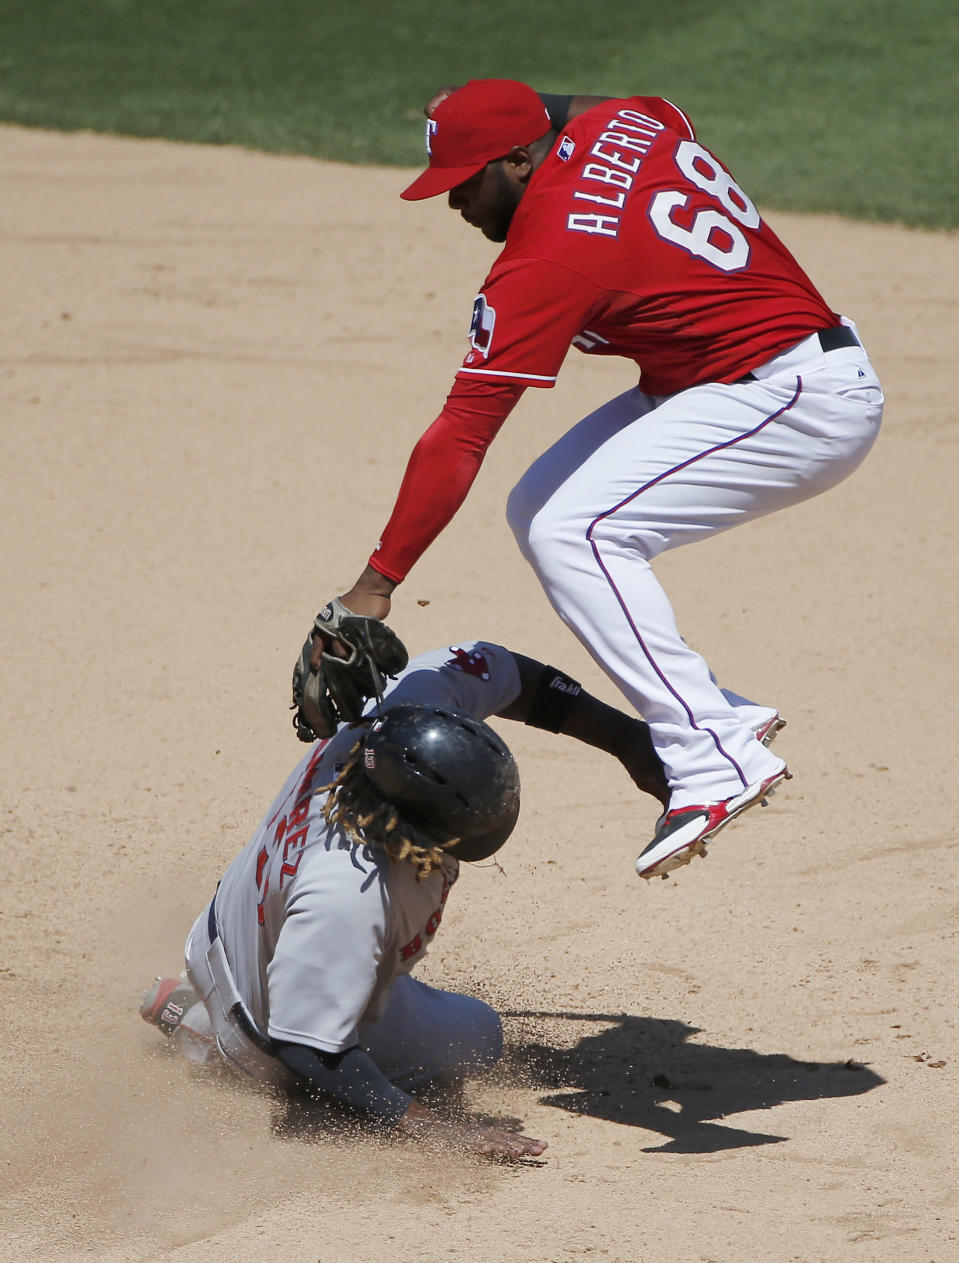 Texas Rangers Hanser Alberto (68) is unable to make the tag in time as Boston Red Sox Hanley Ramirez steals second during the sixth inning of a baseball game, Sunday, May 31, 2015, in Arlington, Texas. (AP Photo/Brandon Wade)